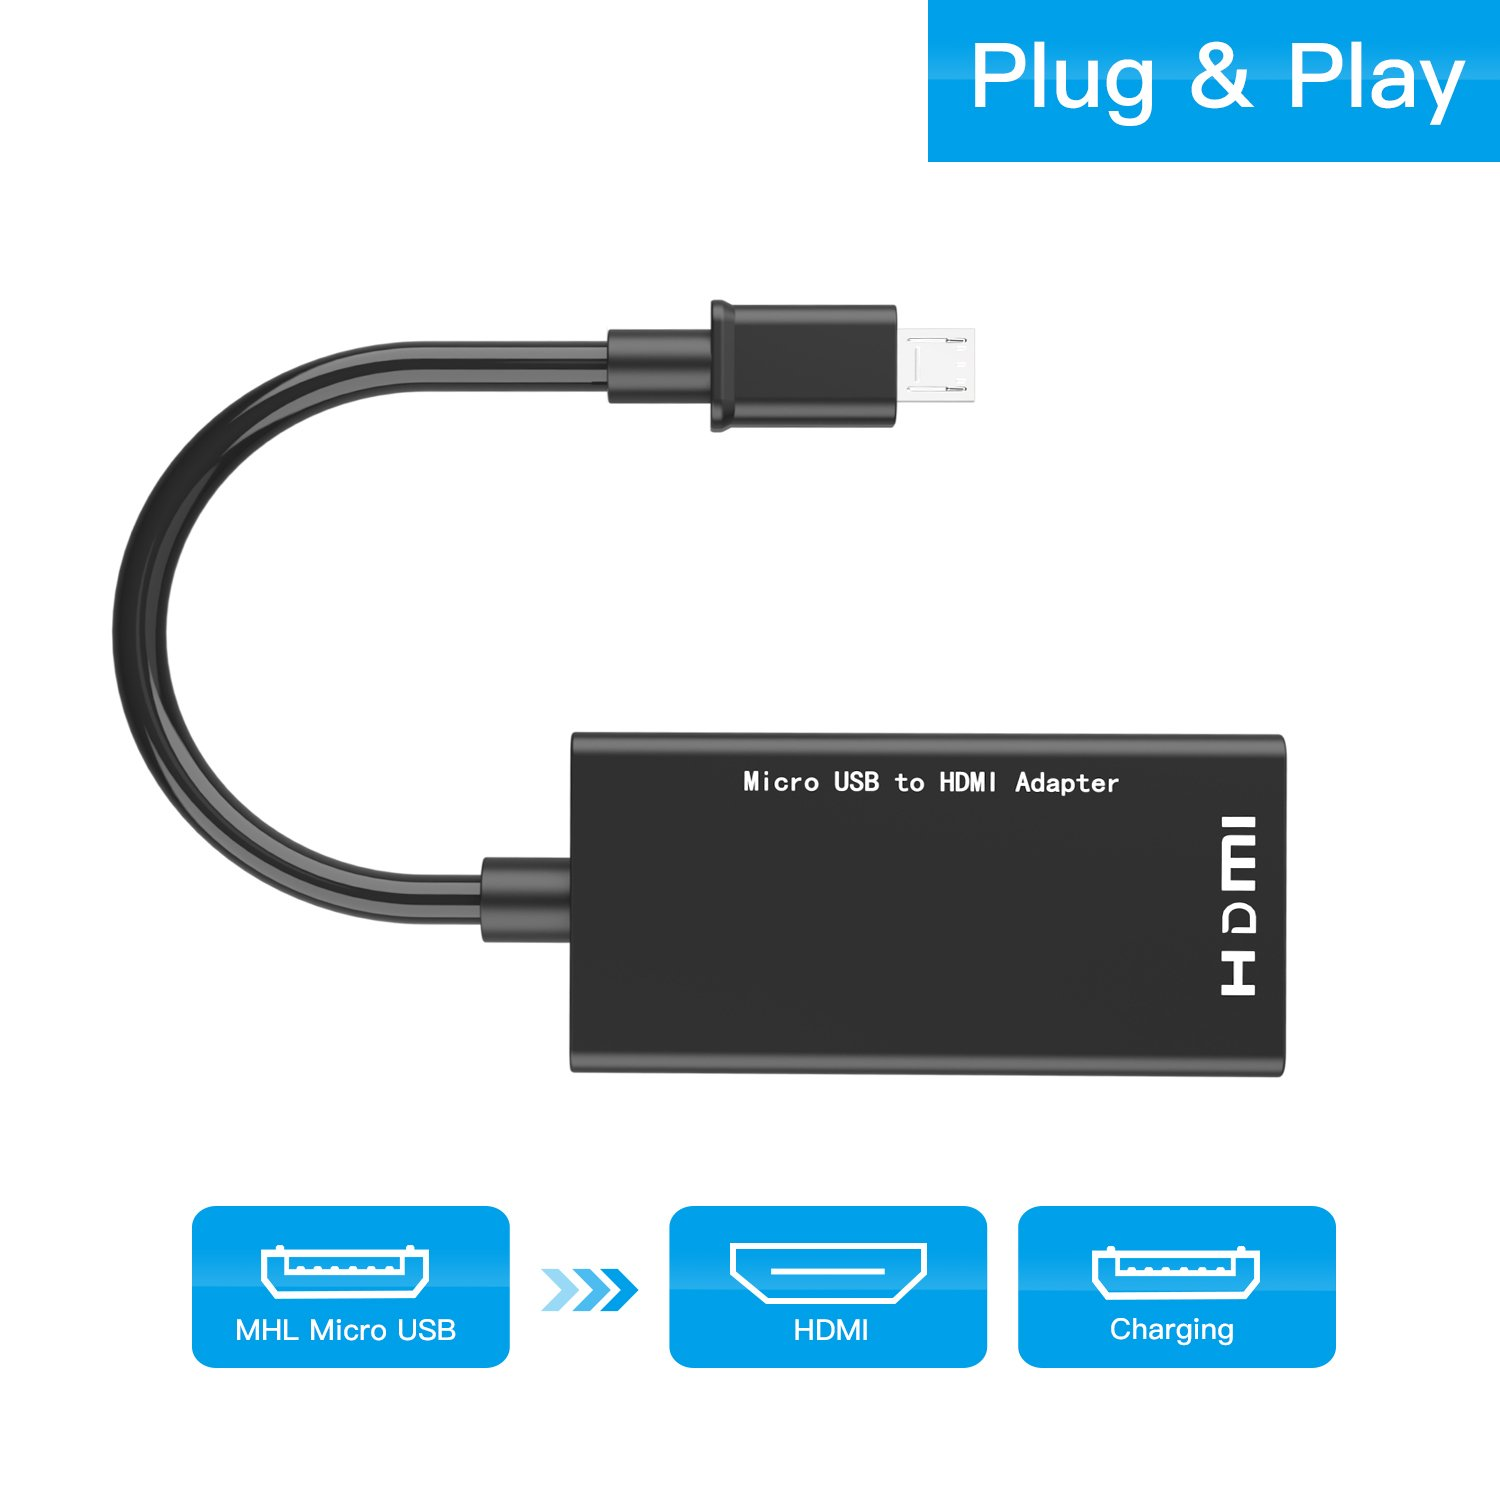 RayCue Micro USB to HDMI Adapter, MHL Micro USB Male to 1080pHDMI Female Adapter Cable for Android Smart phones and Tablets